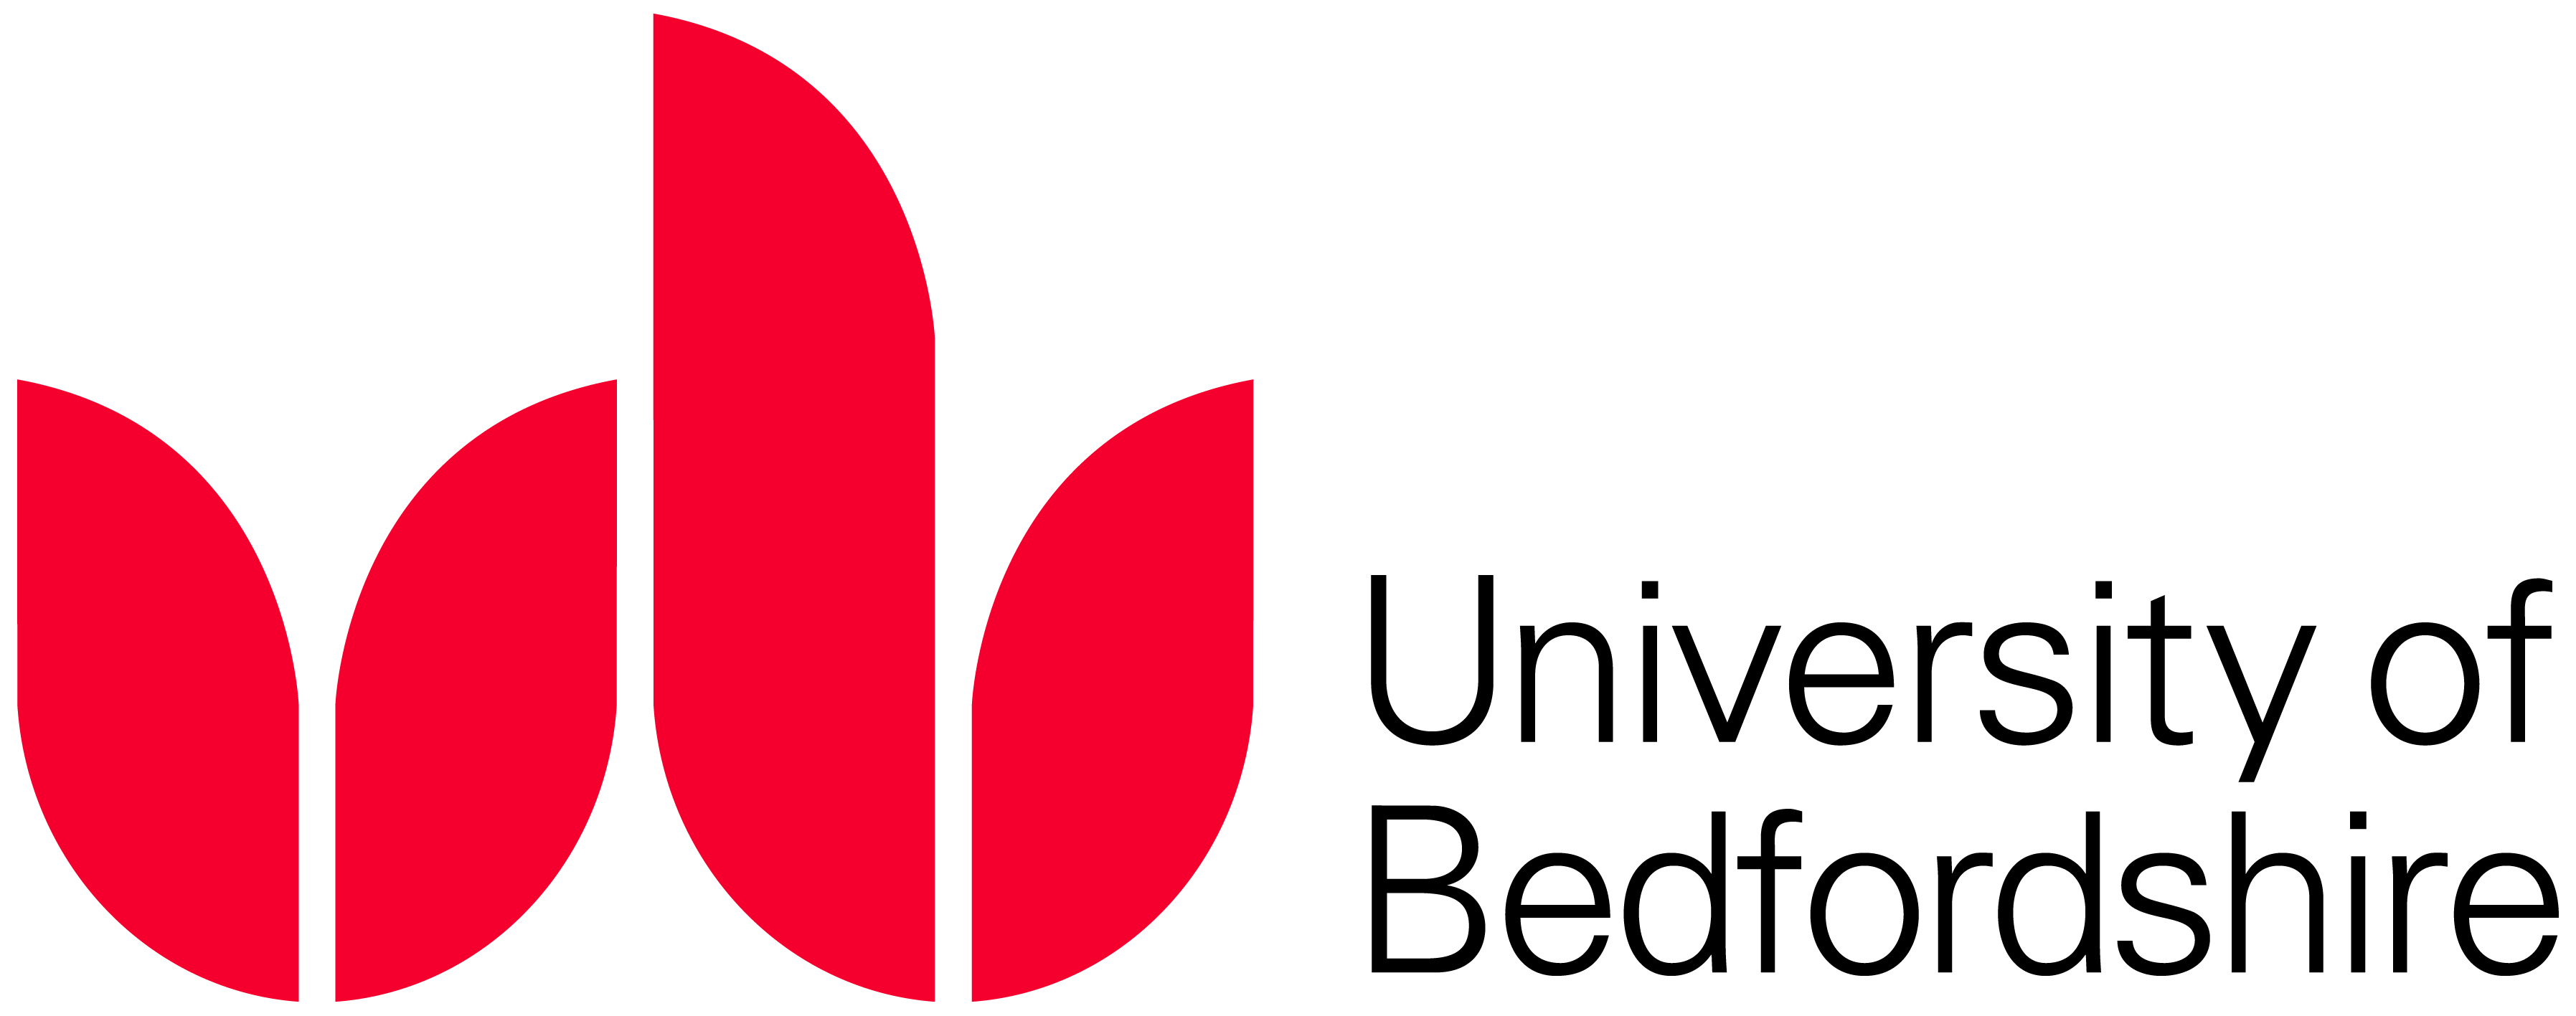 http://www.bedfordcreativearts.org.uk/wp-content/uploads/2015/02/UoB-logo.jpg